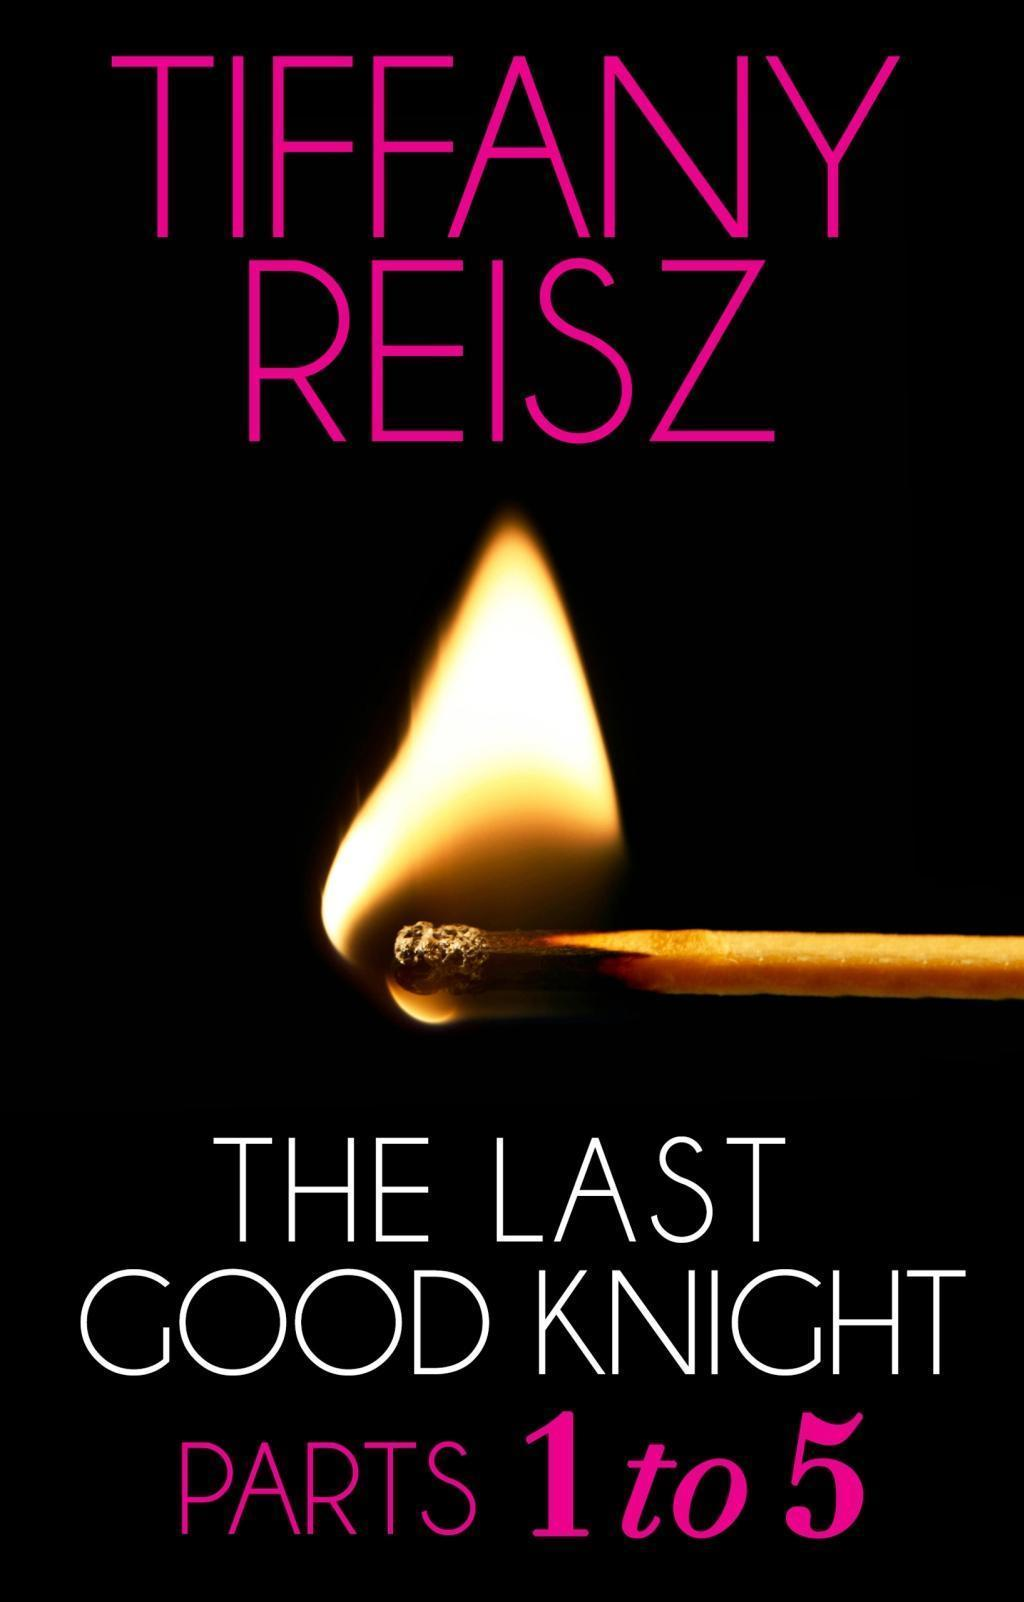 The Last Good Knight: Scars and Stripes / Sore Spots / The Games Destiny Plays / Fit to Be Tied / The Last Good Night (Mills & Boon Spice) (The Original Sinners: The Red Years - short story)